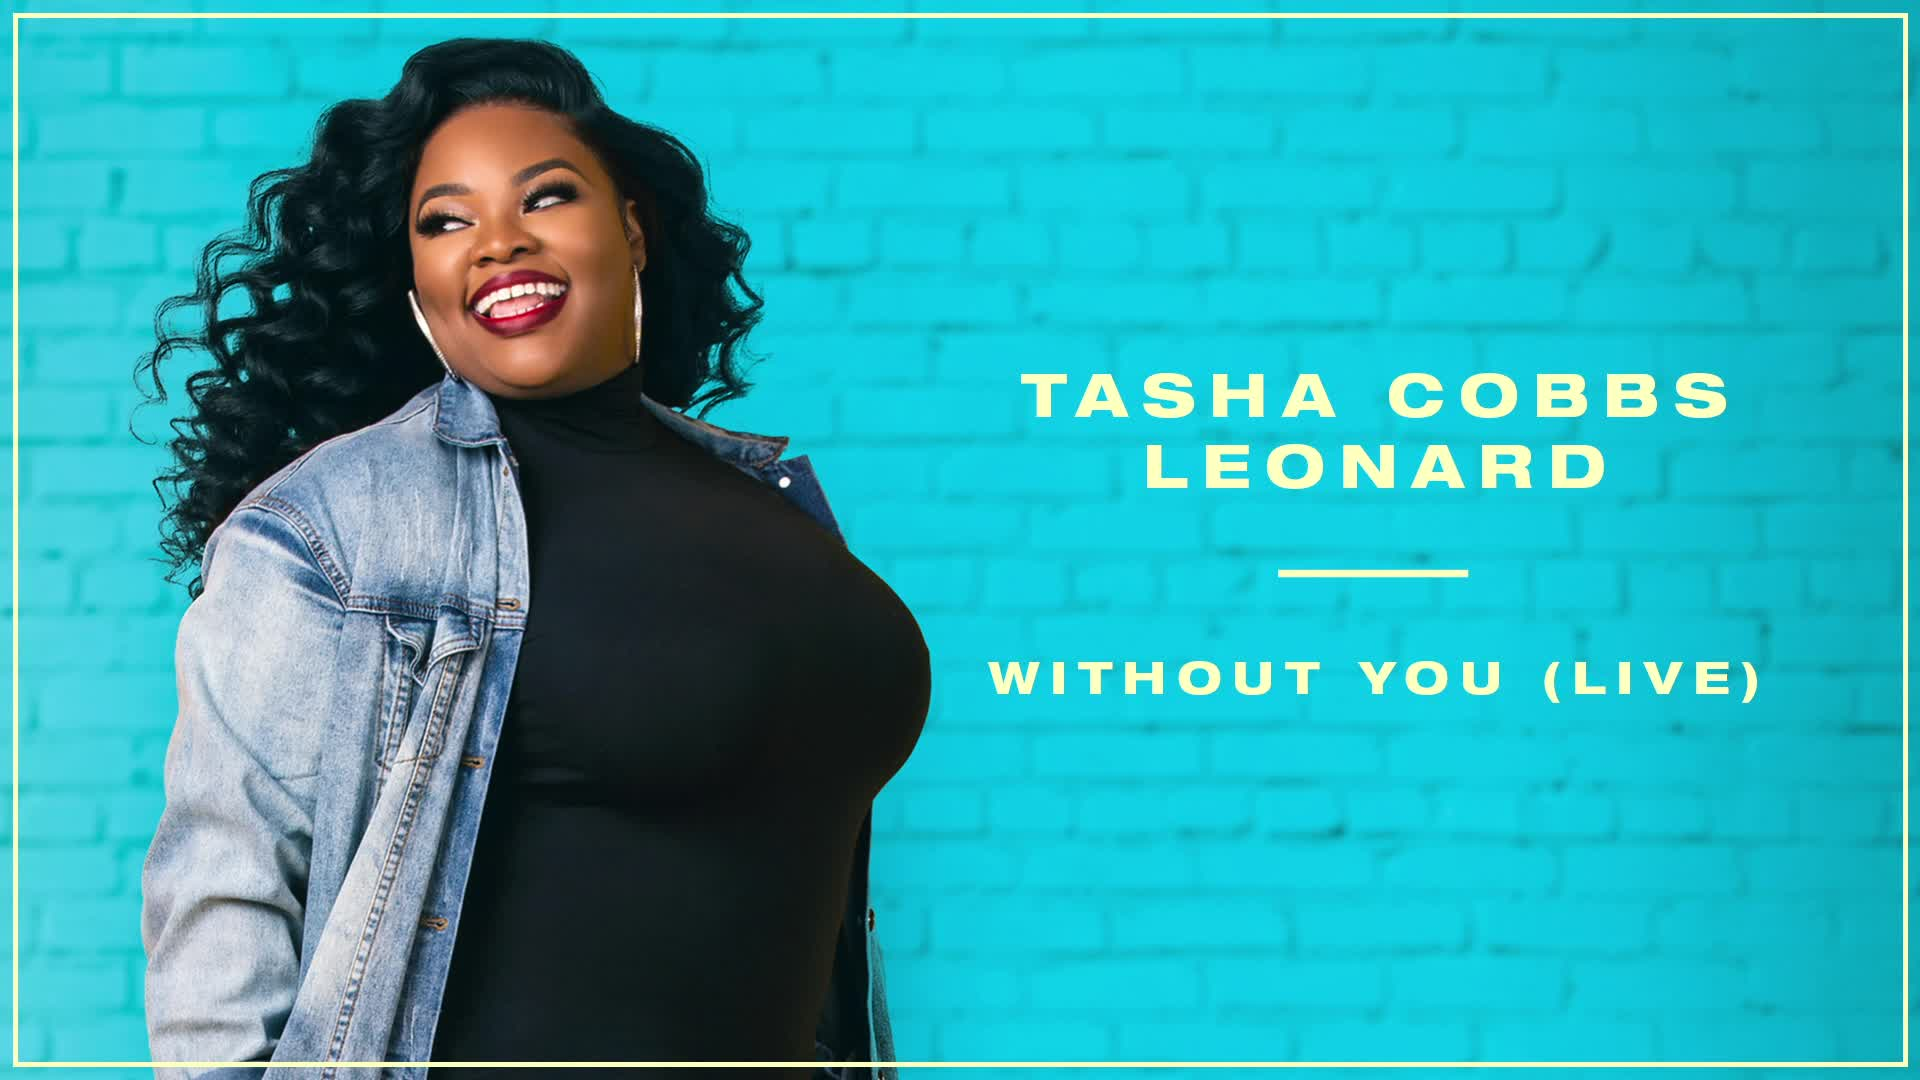 Tasha Cobbs Leonard - Without You